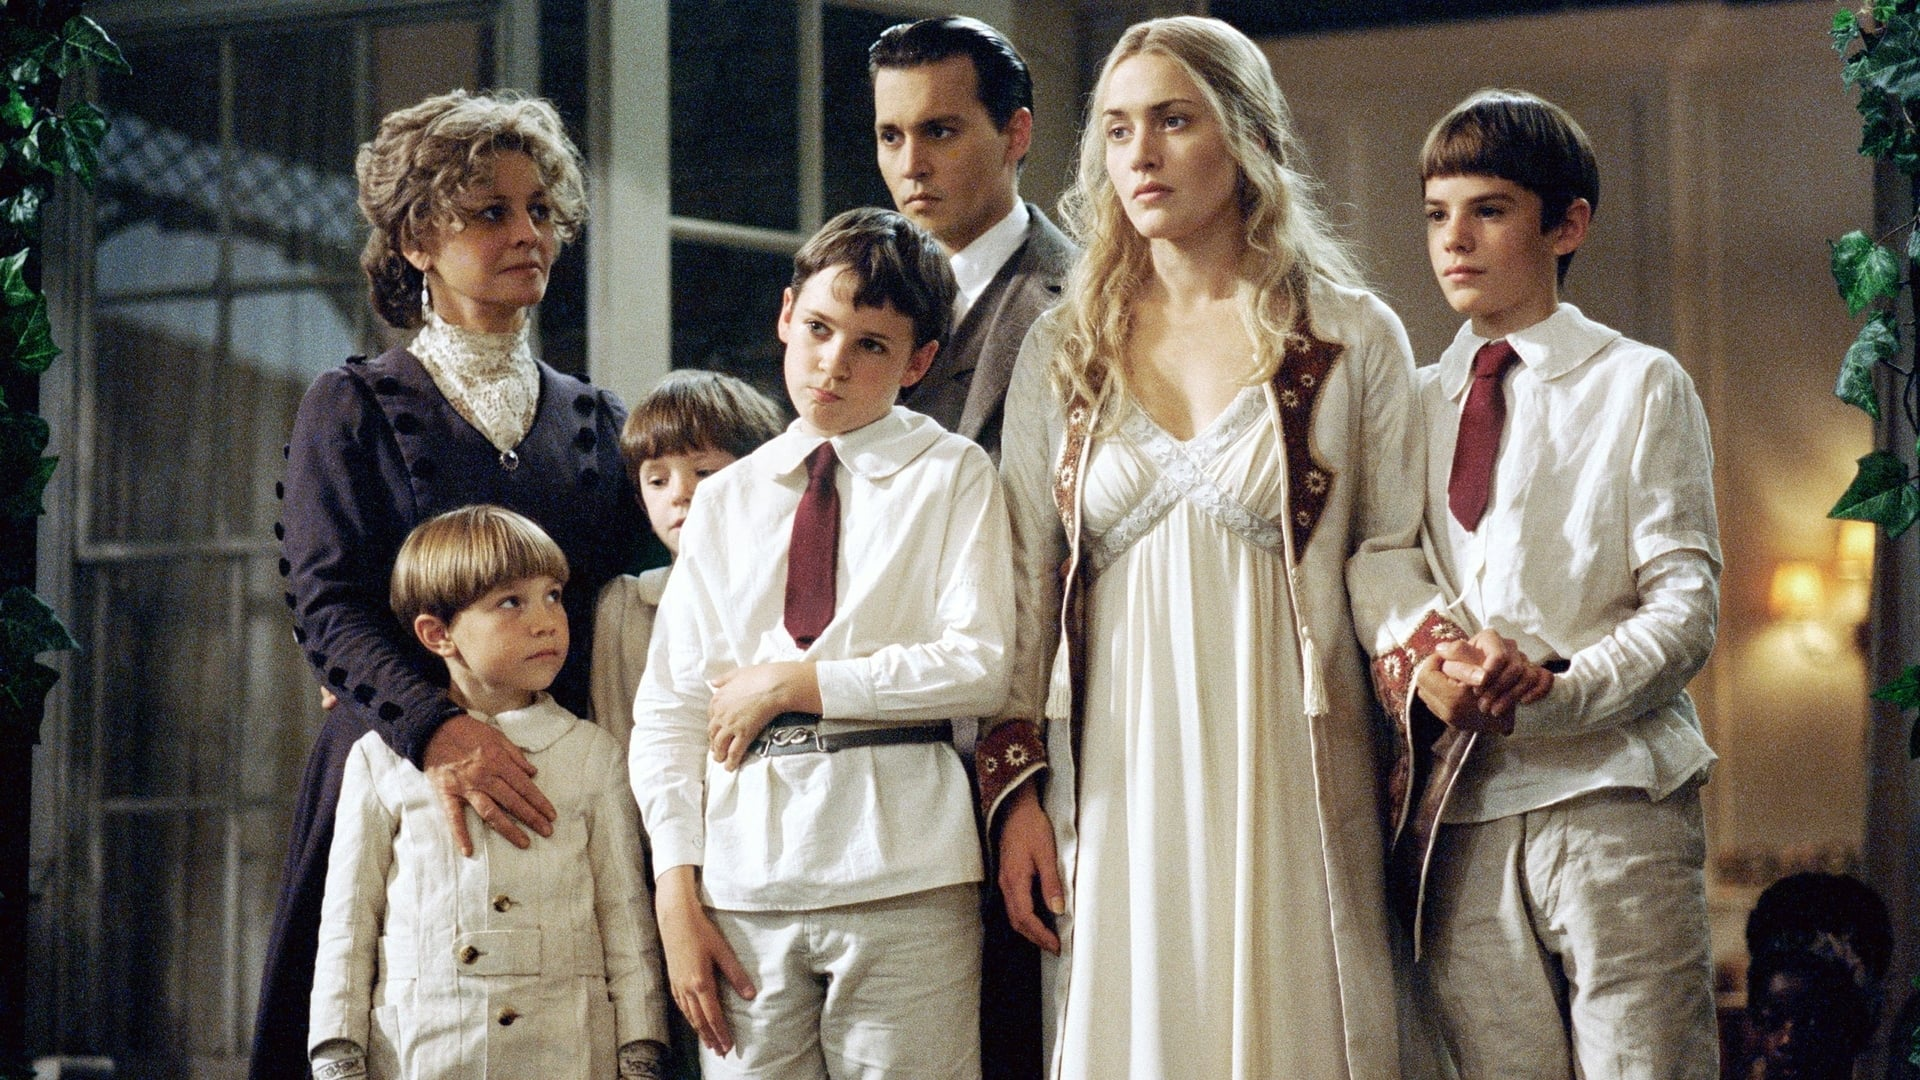 Johnny Depp and Kate Winslet surrounded by the Llewellyn Davies children with Julie Christie in Finding Neverland (2004)